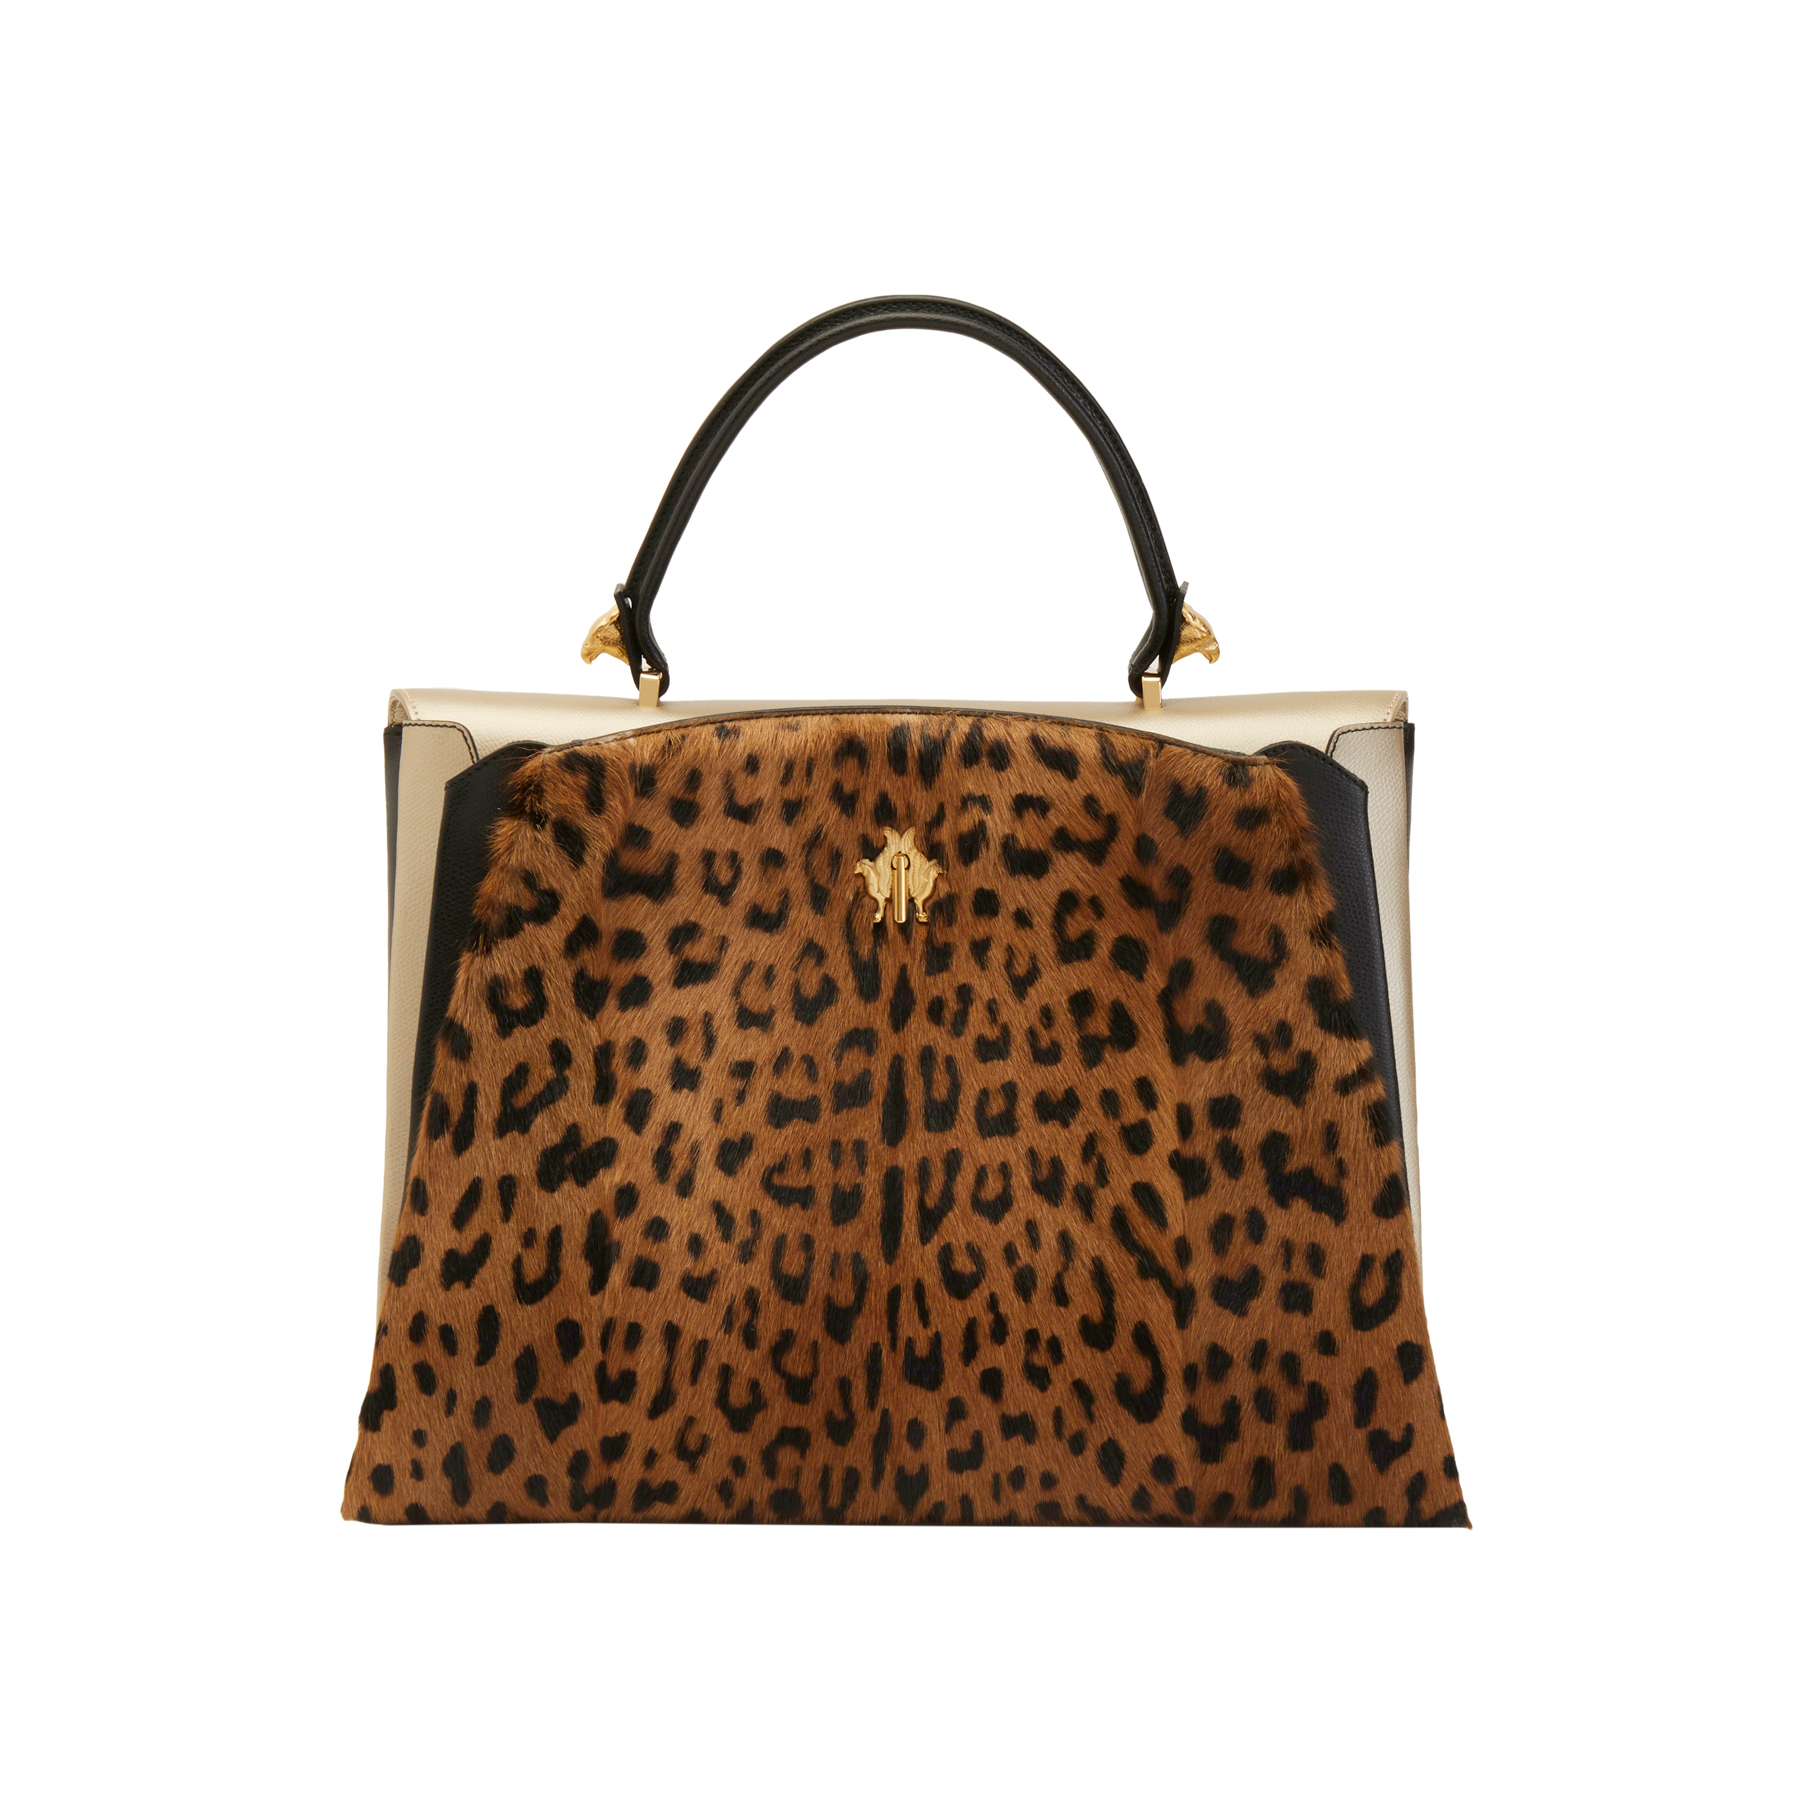 Leopard Origami Stock Photos, Images & Photography | Shutterstock | 1800x1800